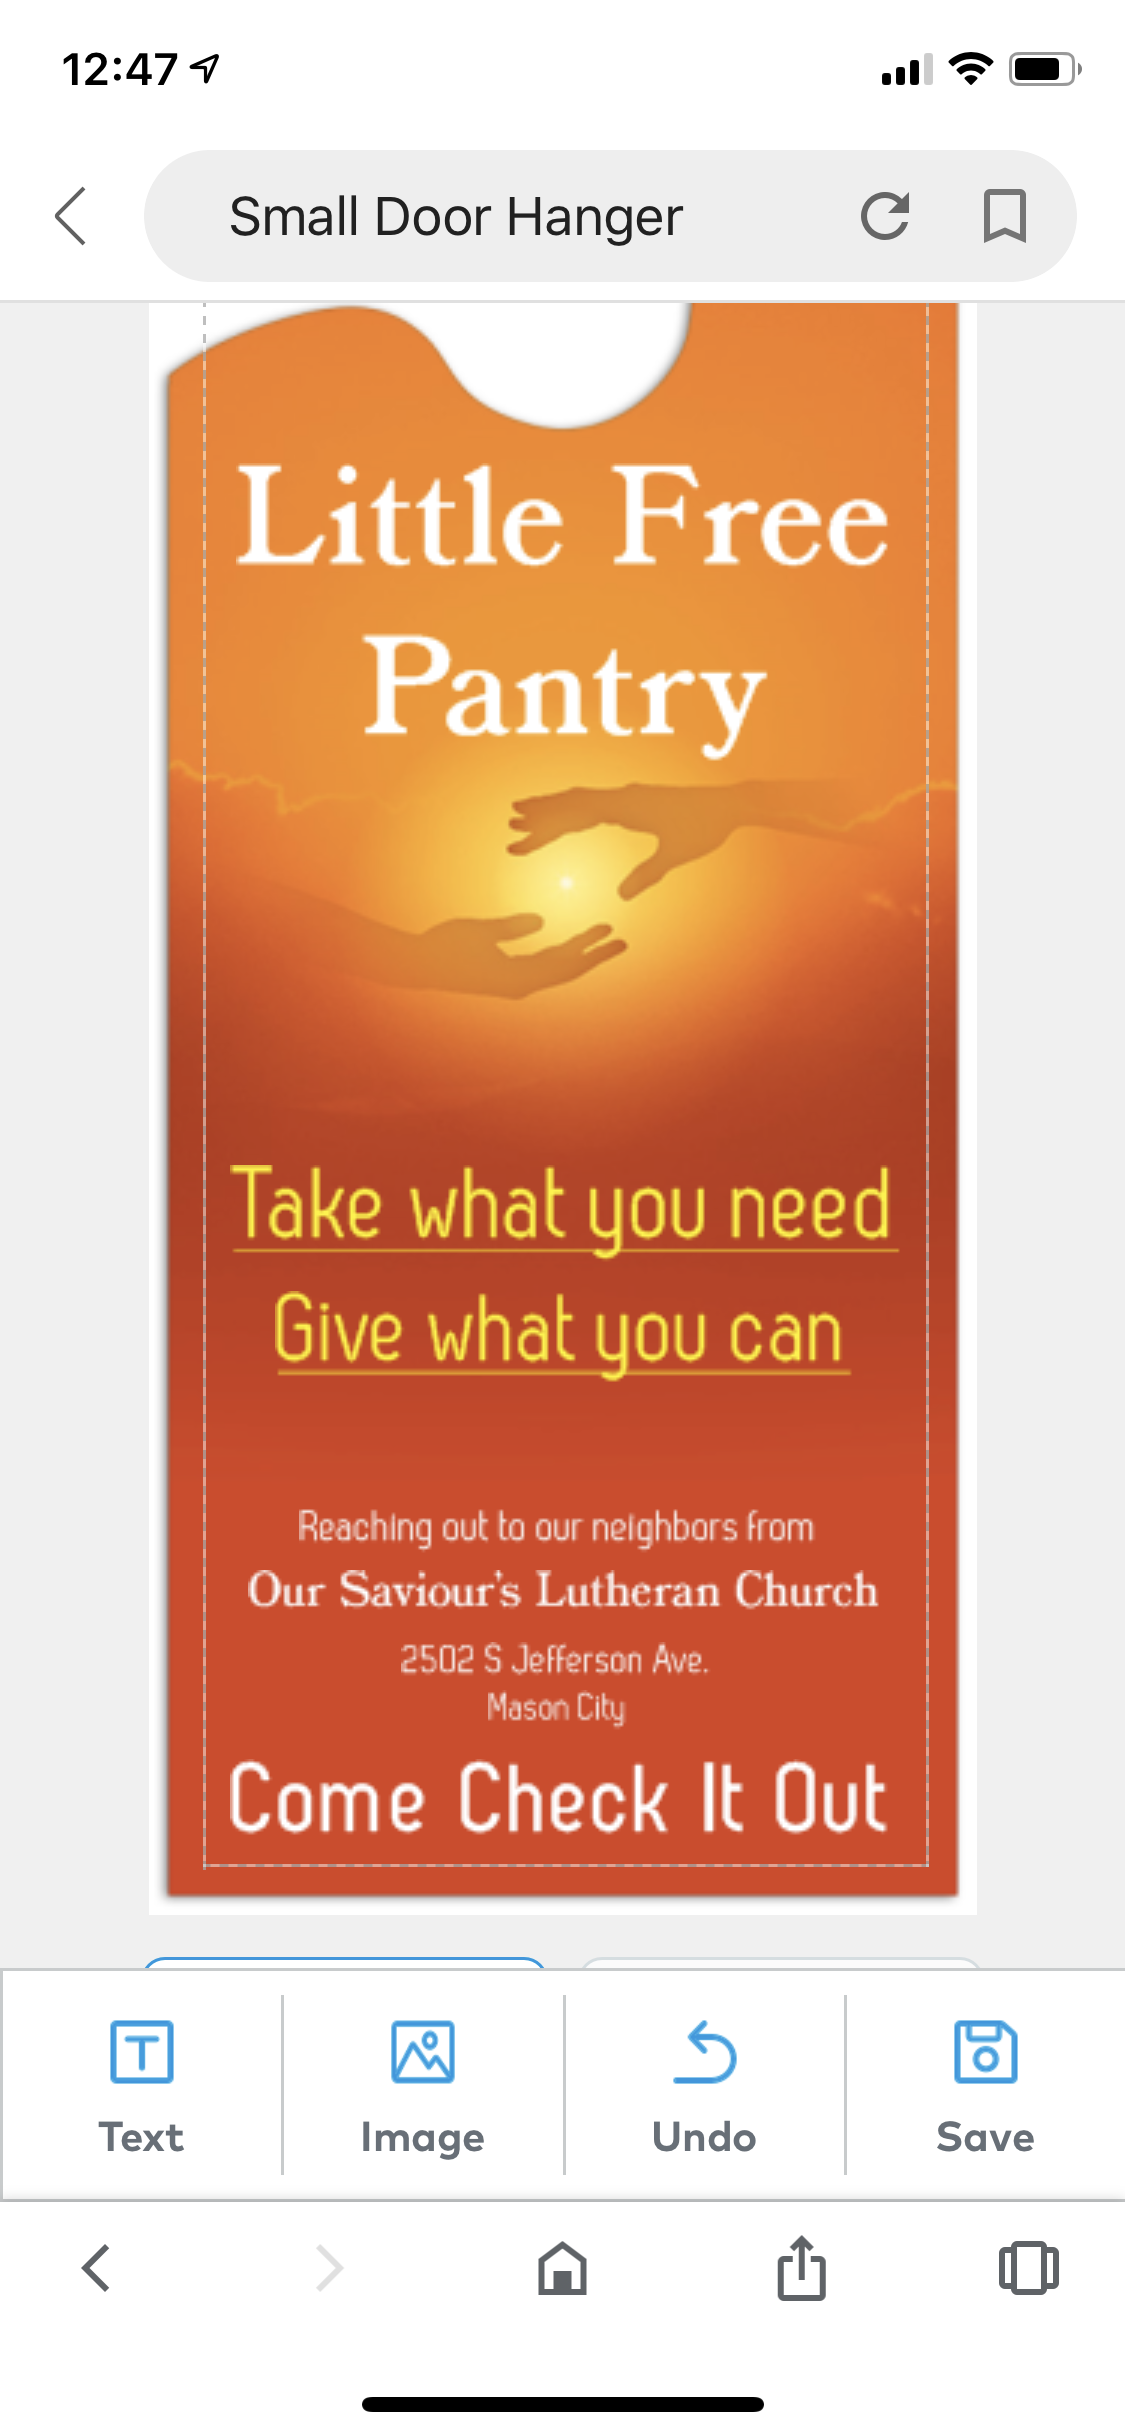 Little Free Pantry - Our Saviour's Lutheran Church Photo 1